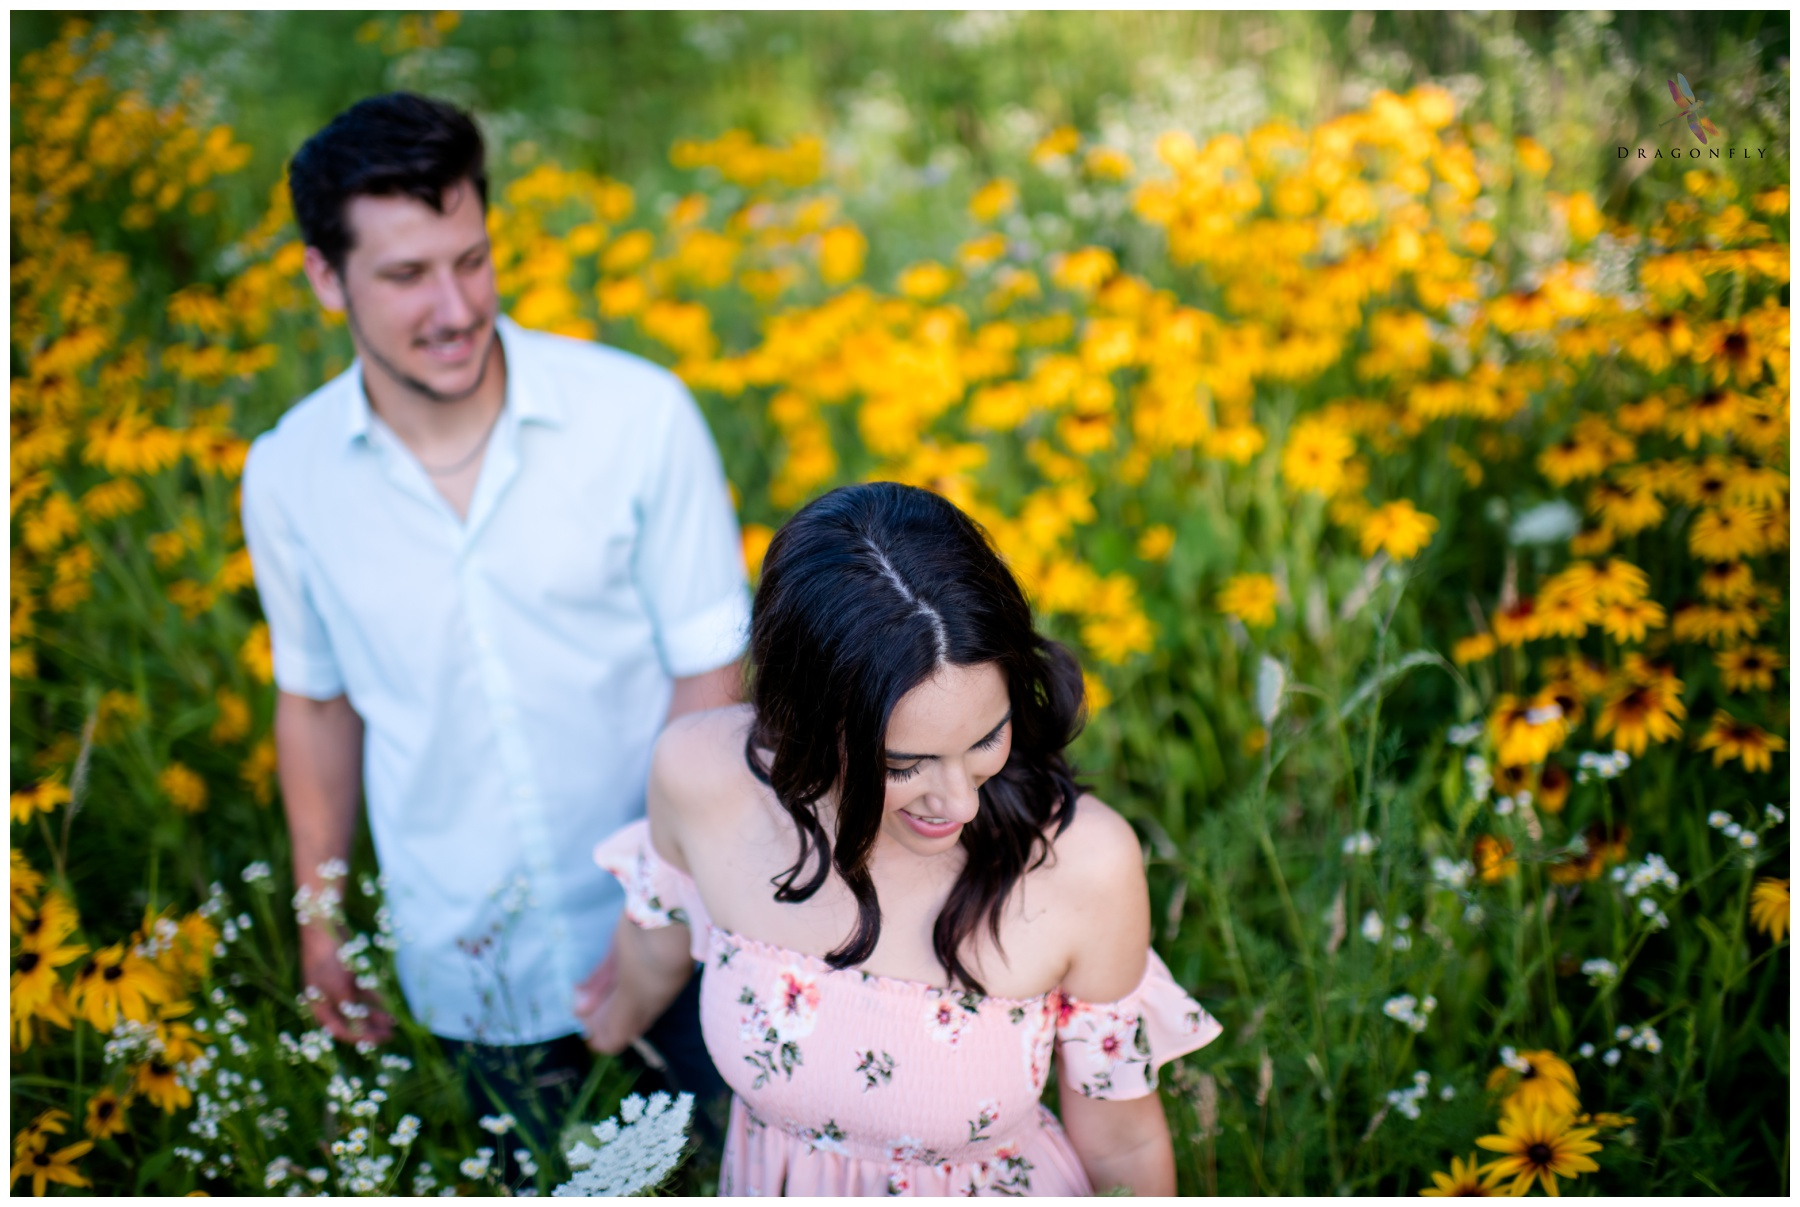 Summer Engagement Photo in Field of Flowers